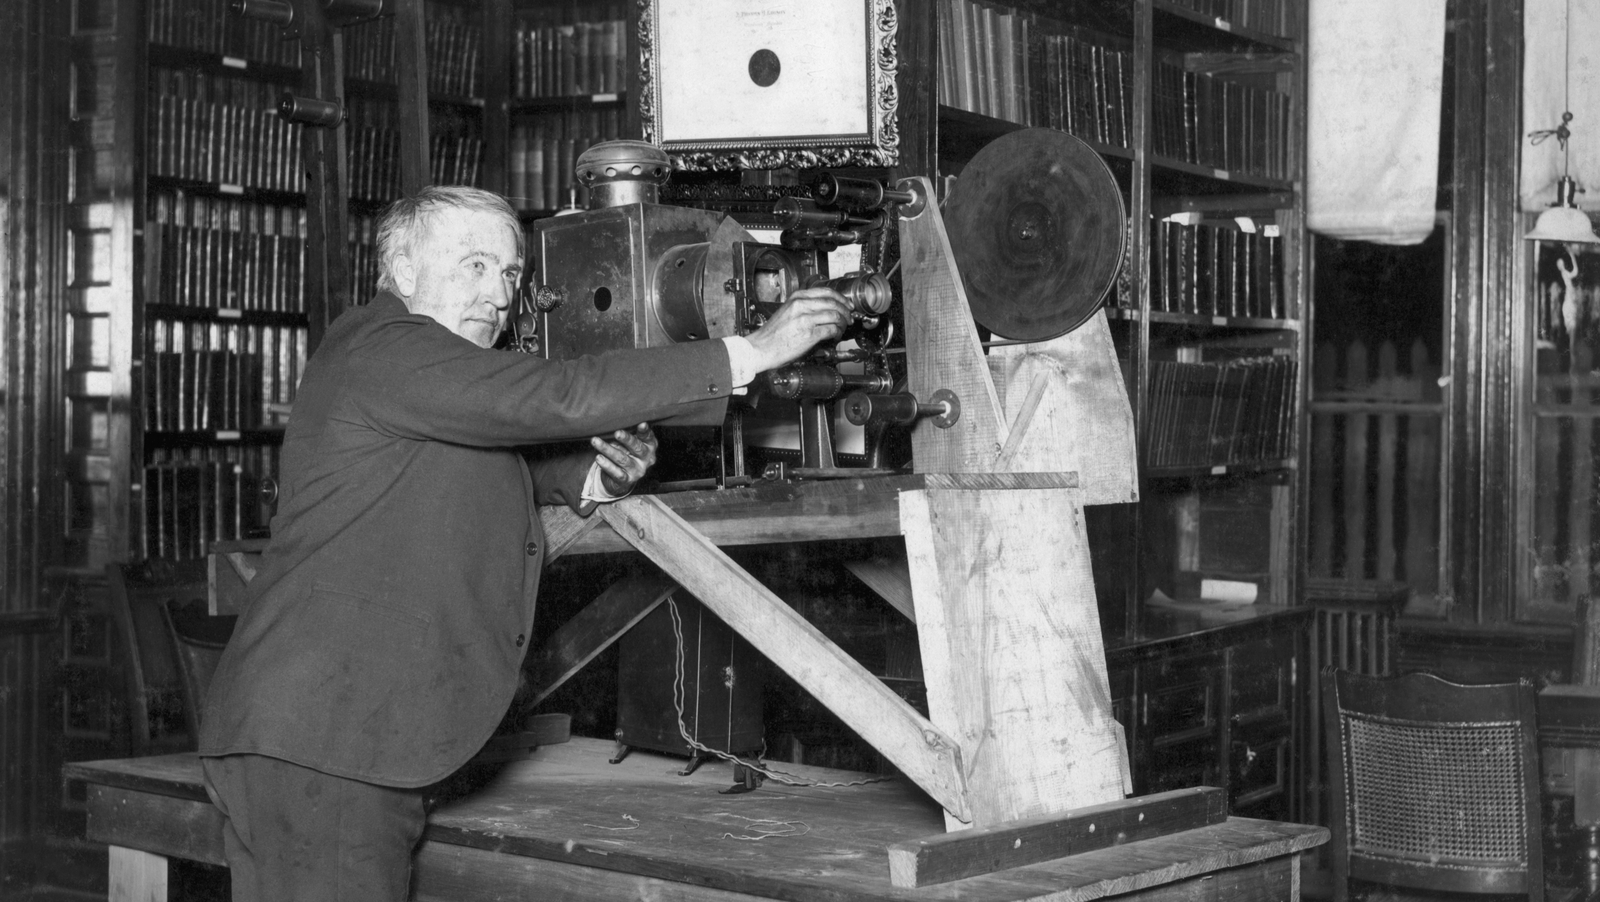 Image - Thomas Edison and his movie projector